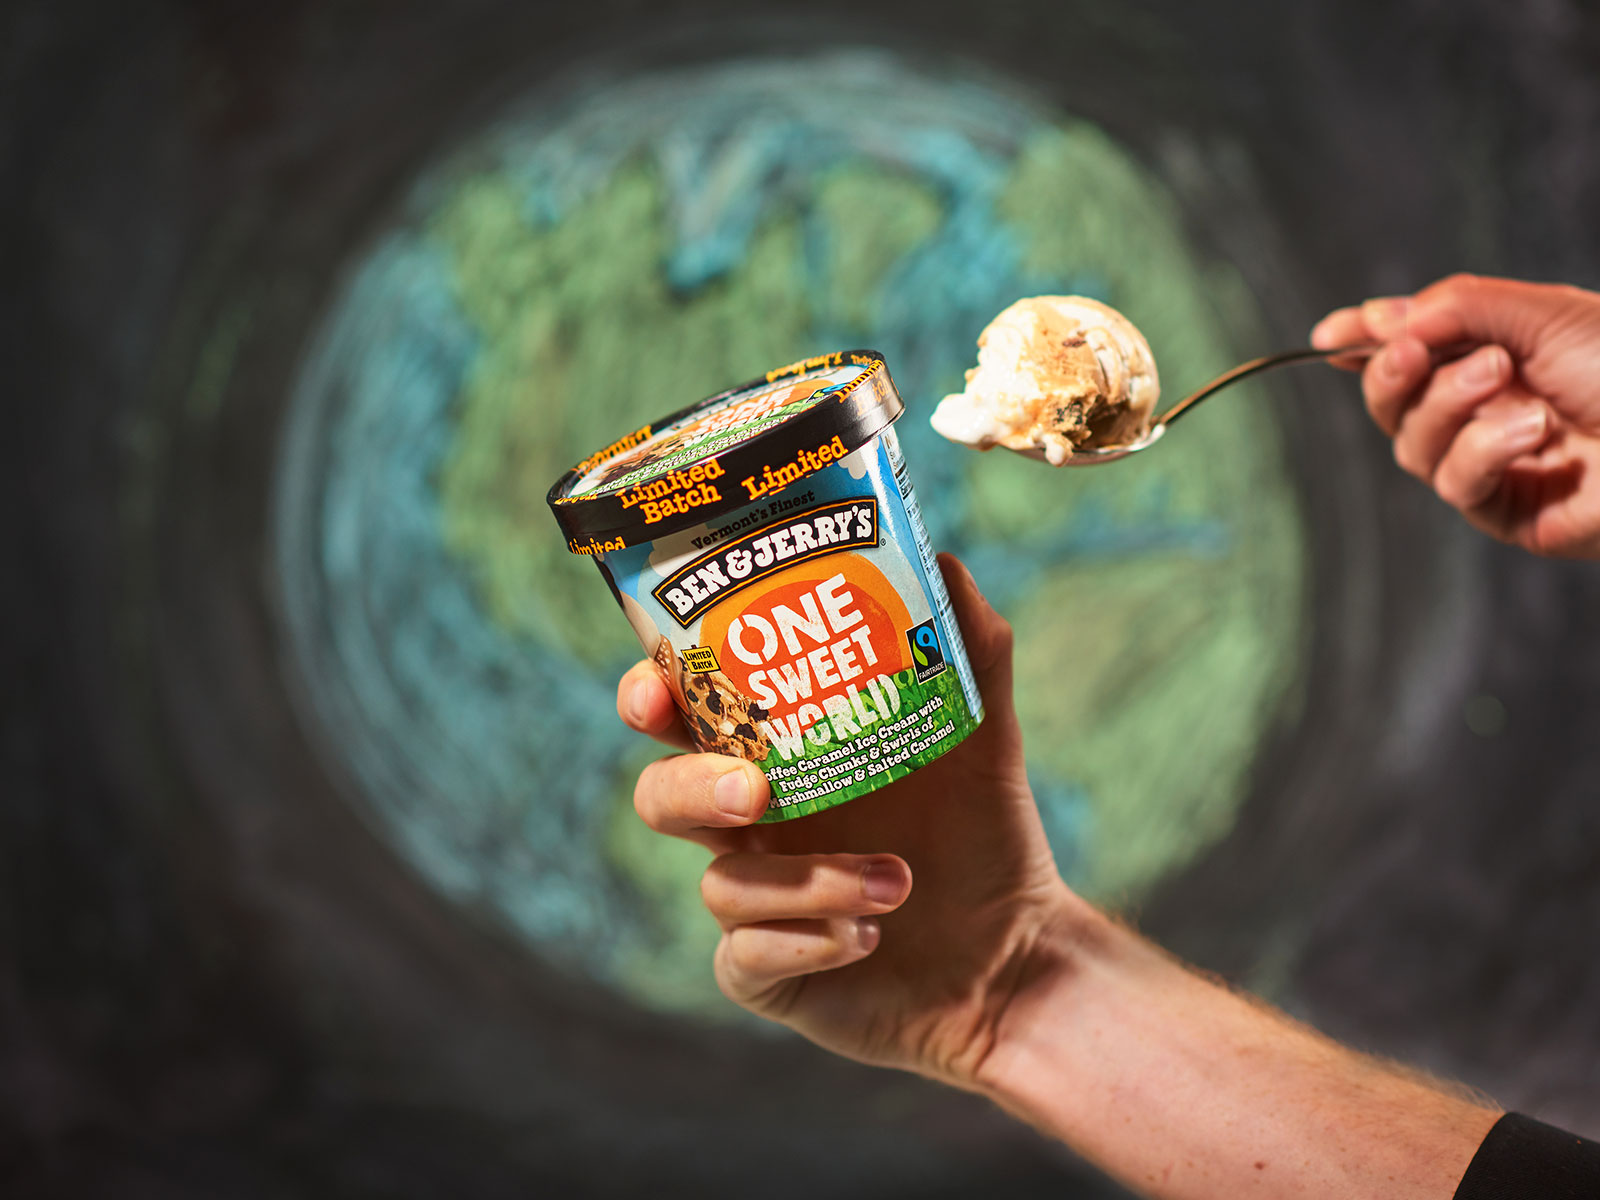 Ben & Jerry's Newest Flavor Will Support Social Justice